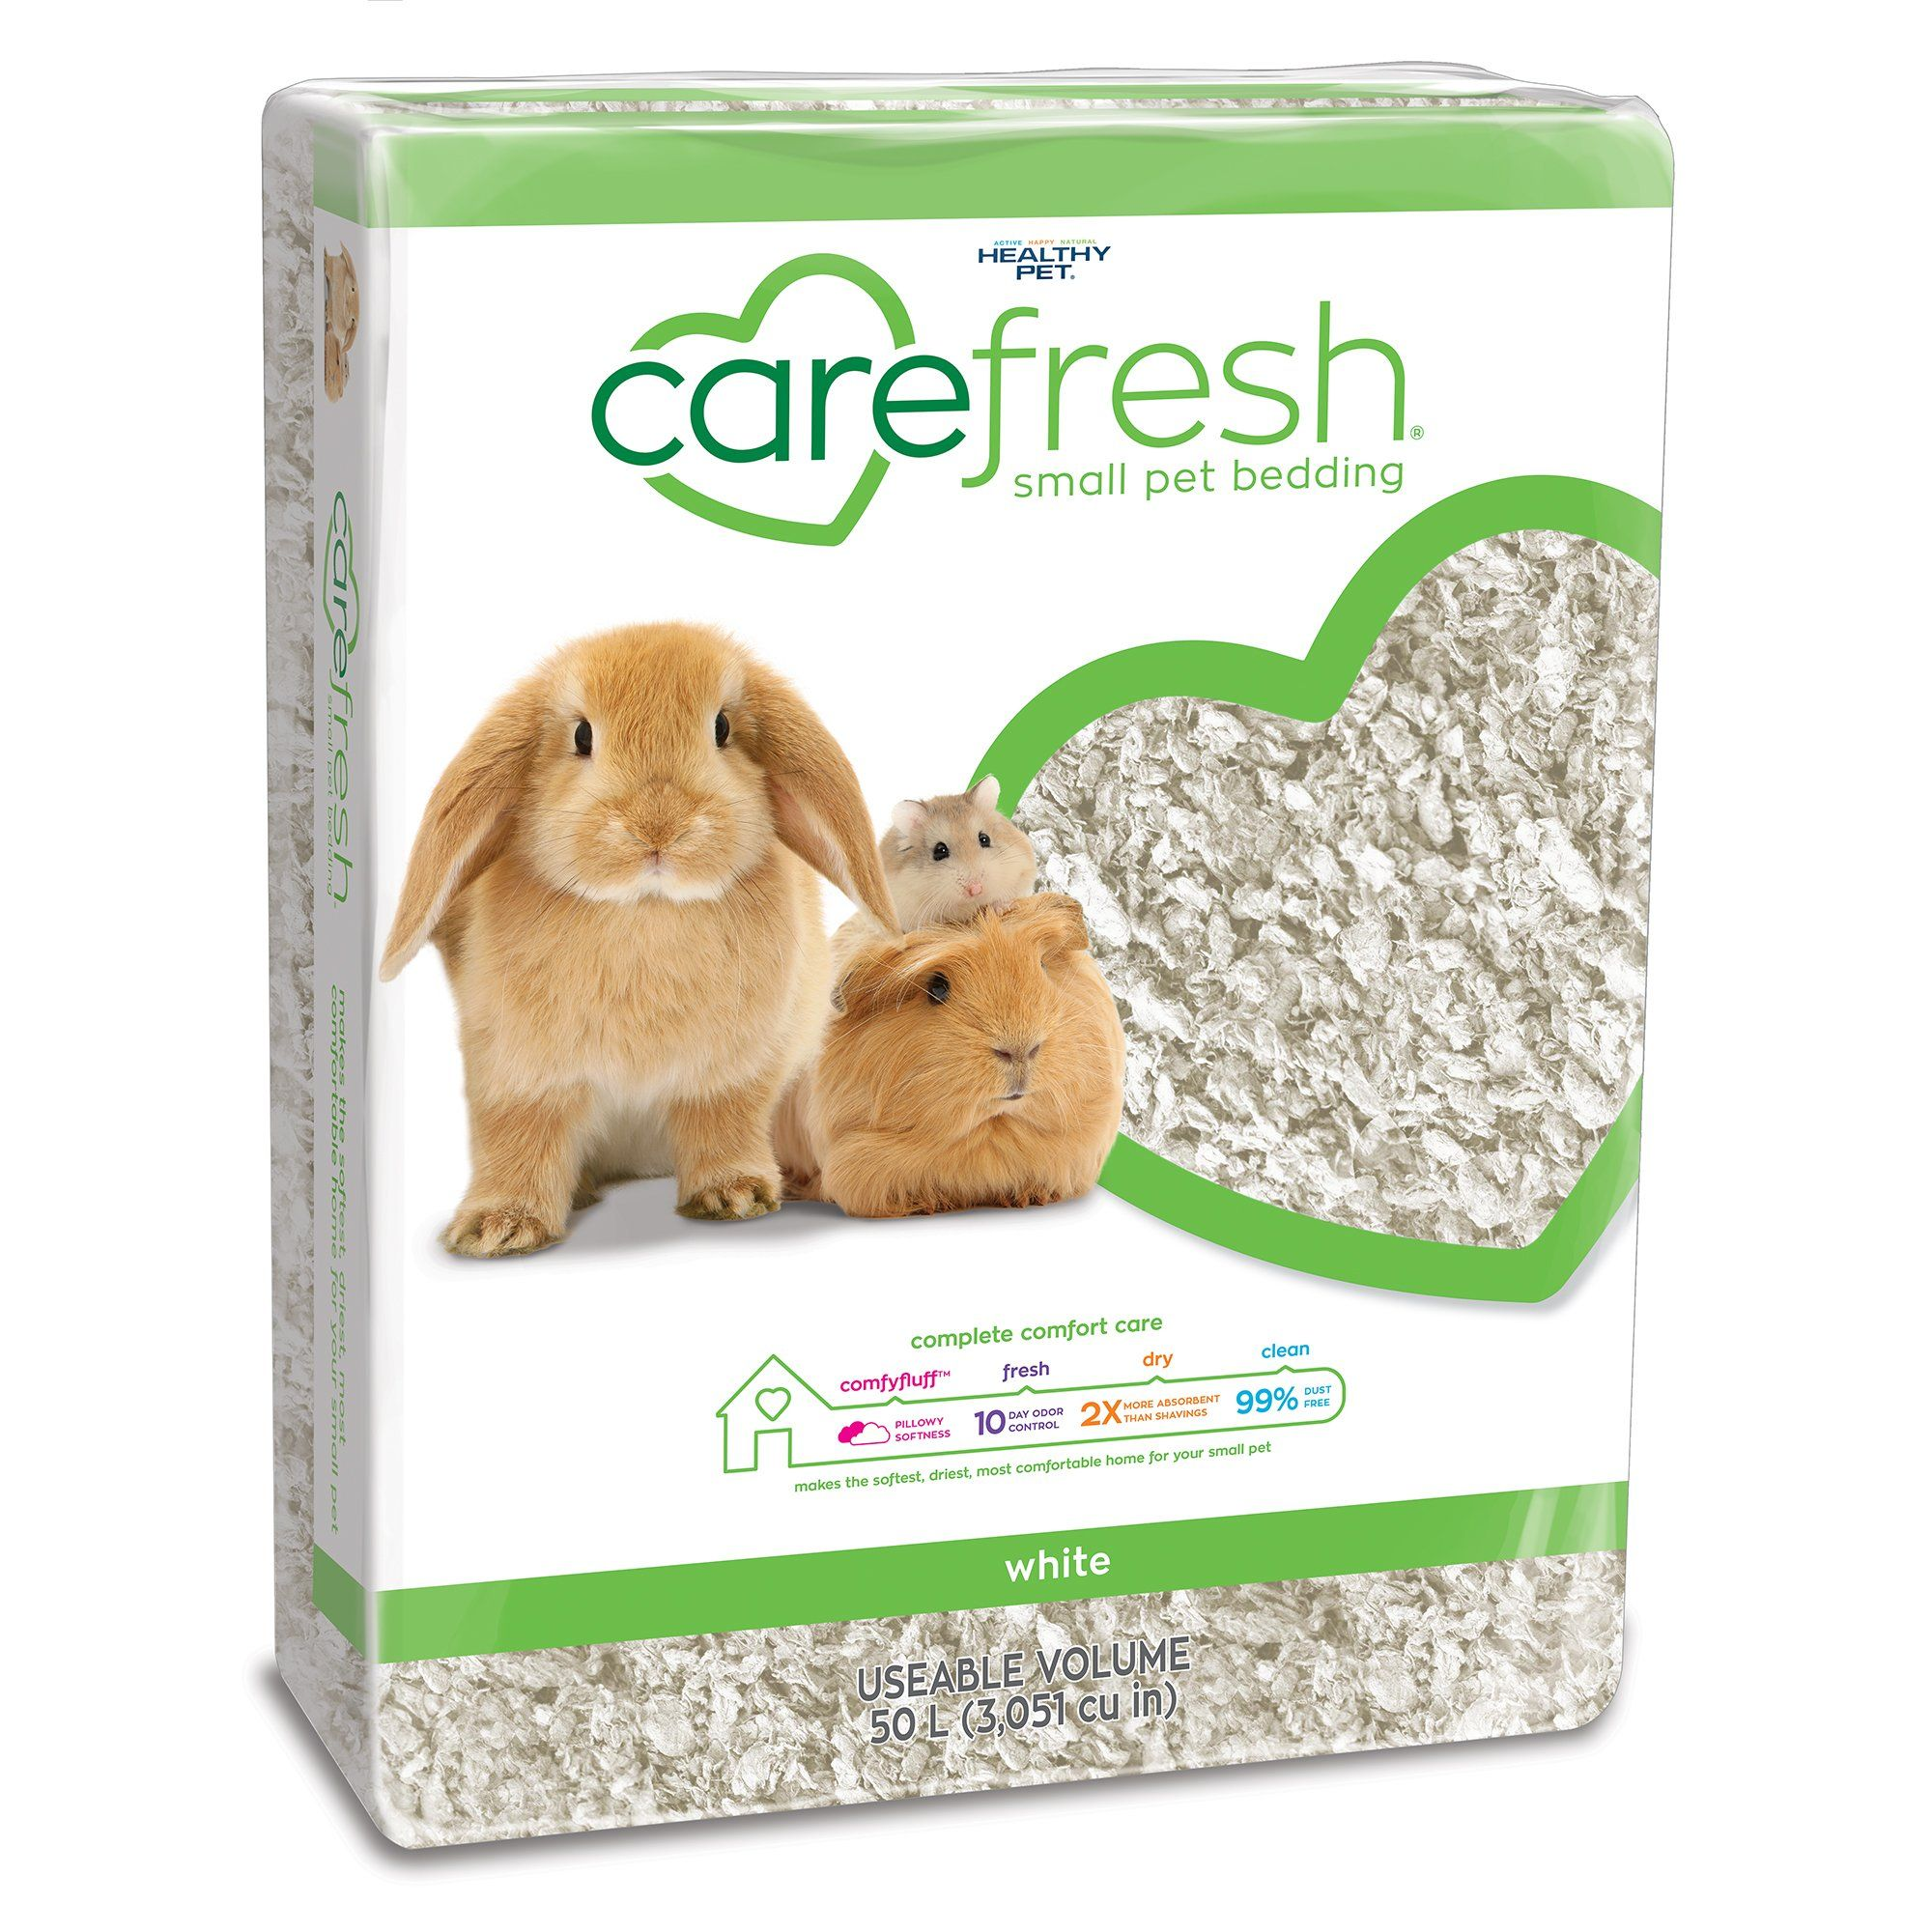 Carefresh White Small Pet Bedding, 50 Liter Hamster